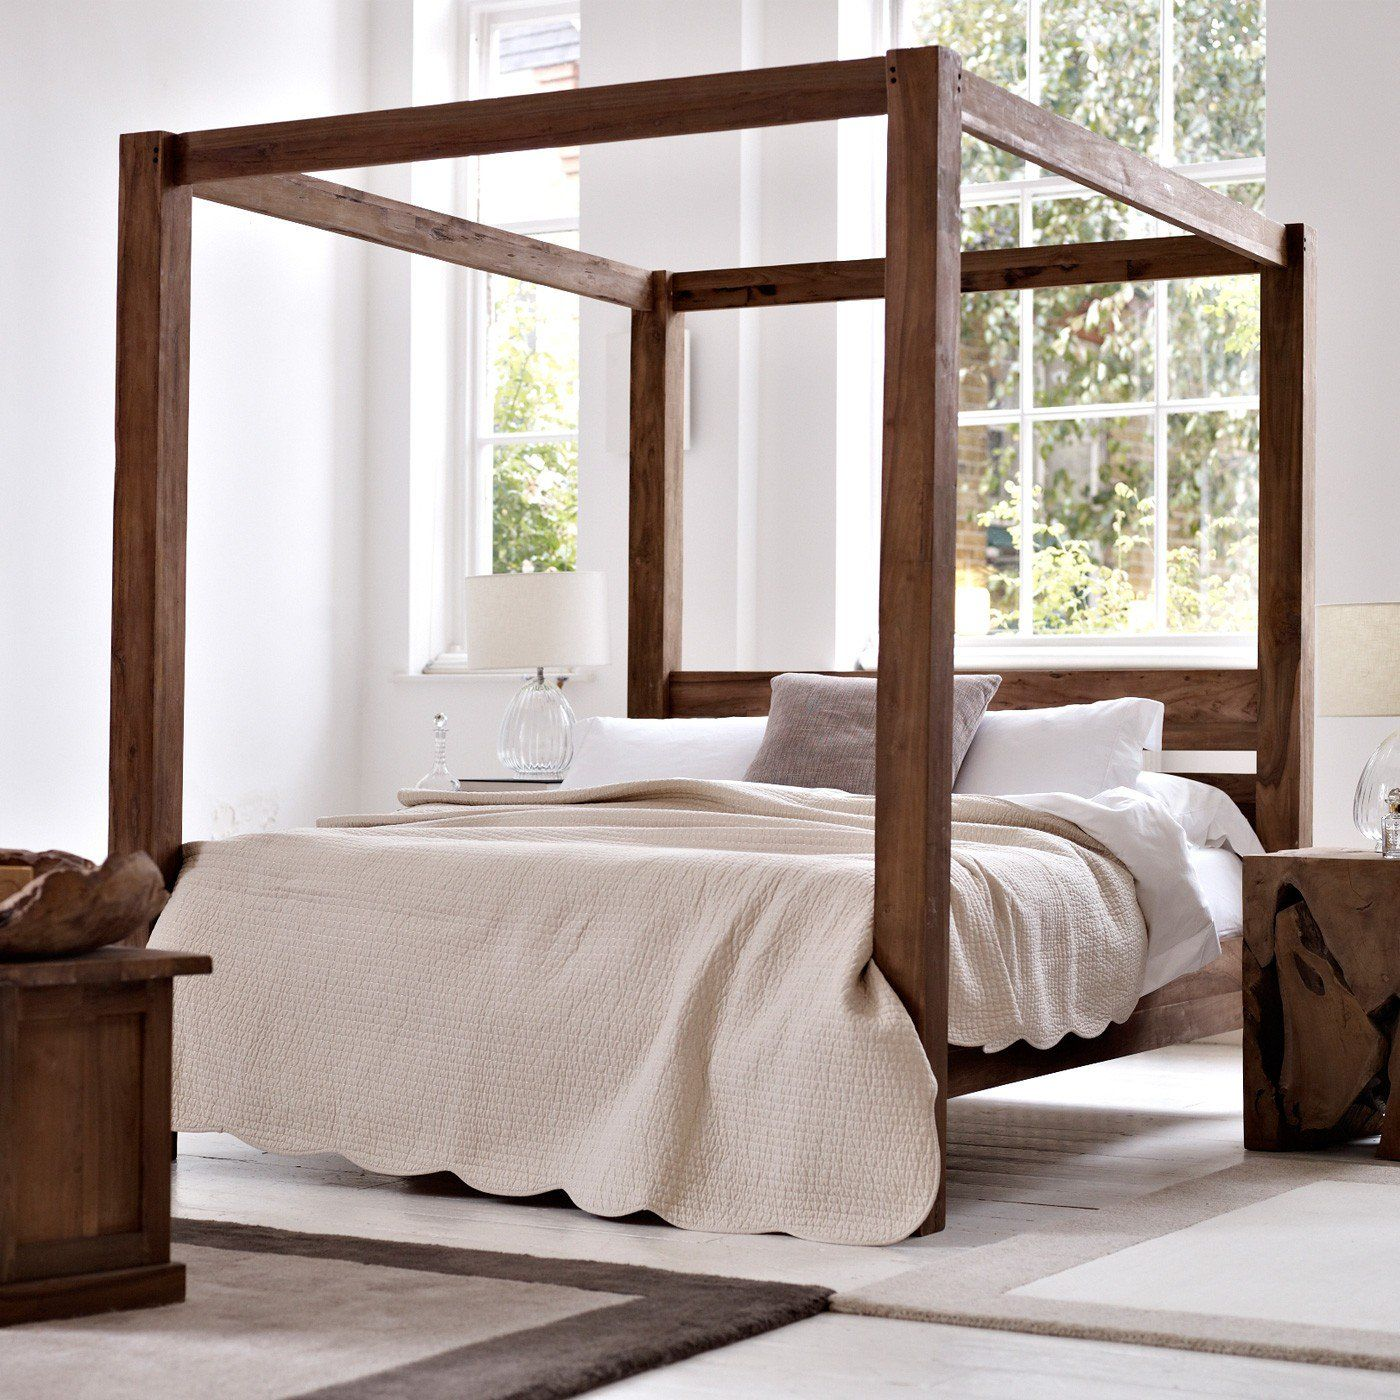 Image result for poster beds Four poster bed frame